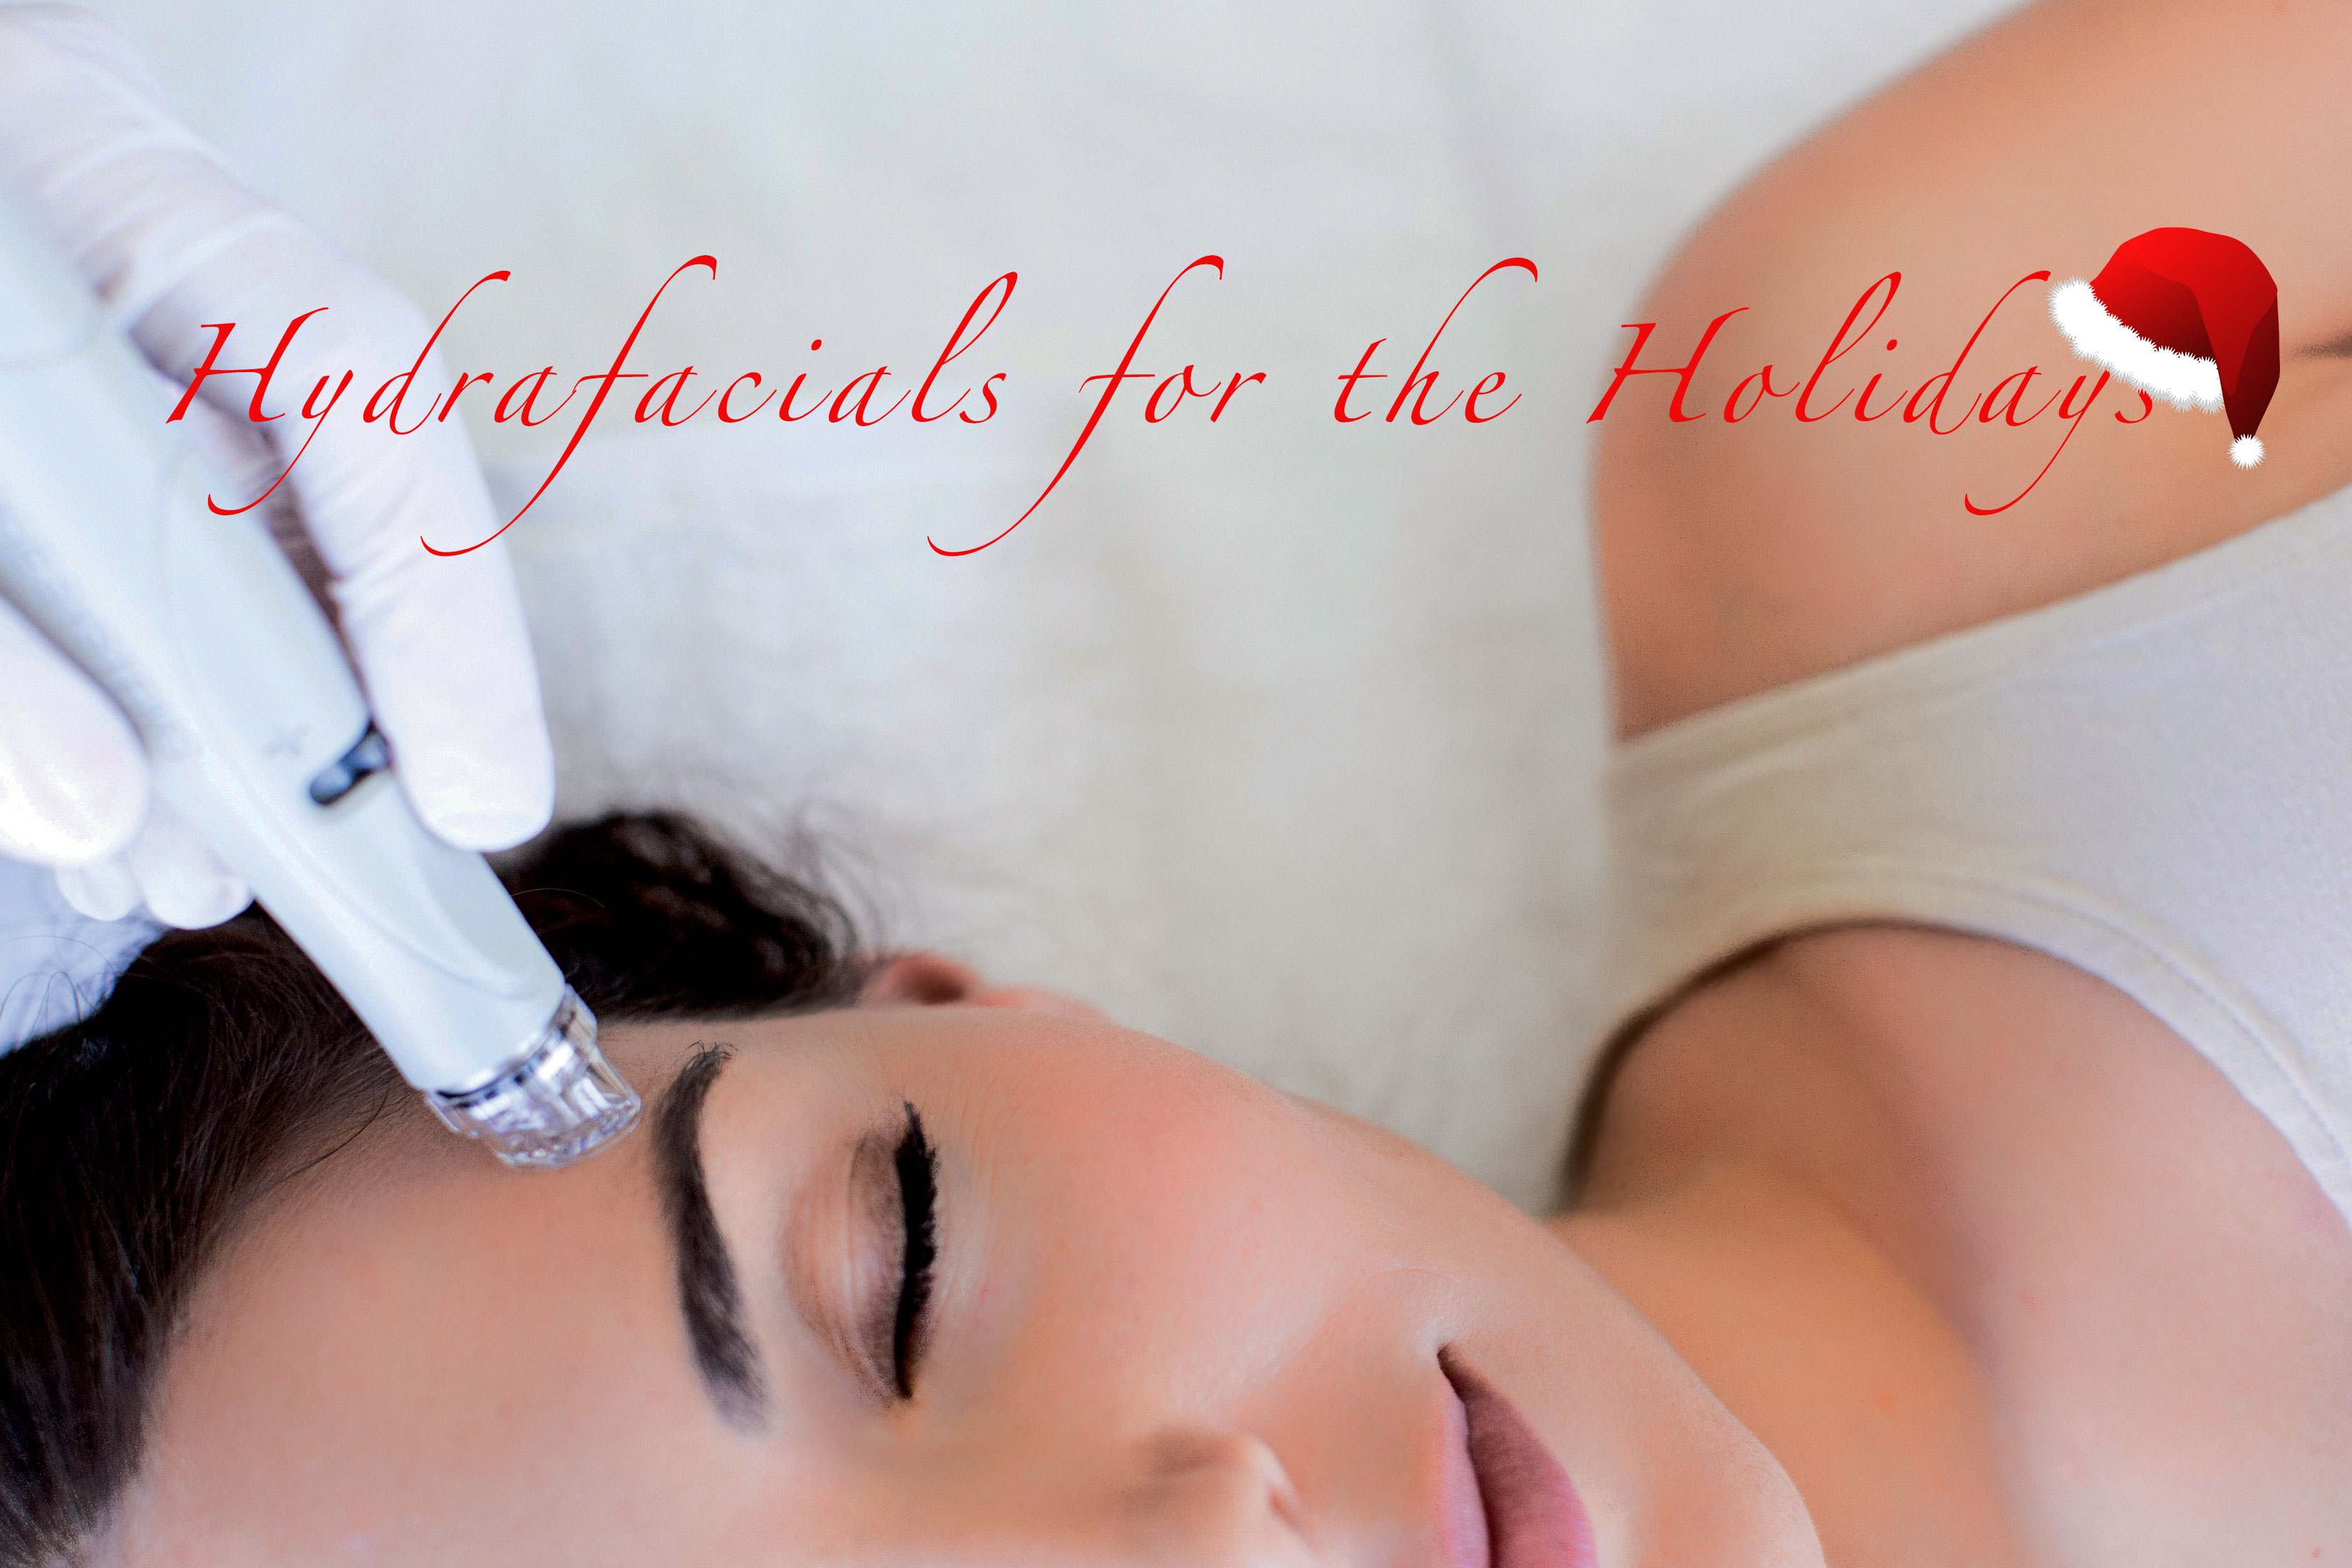 hydrafacial for the holidays gift cards